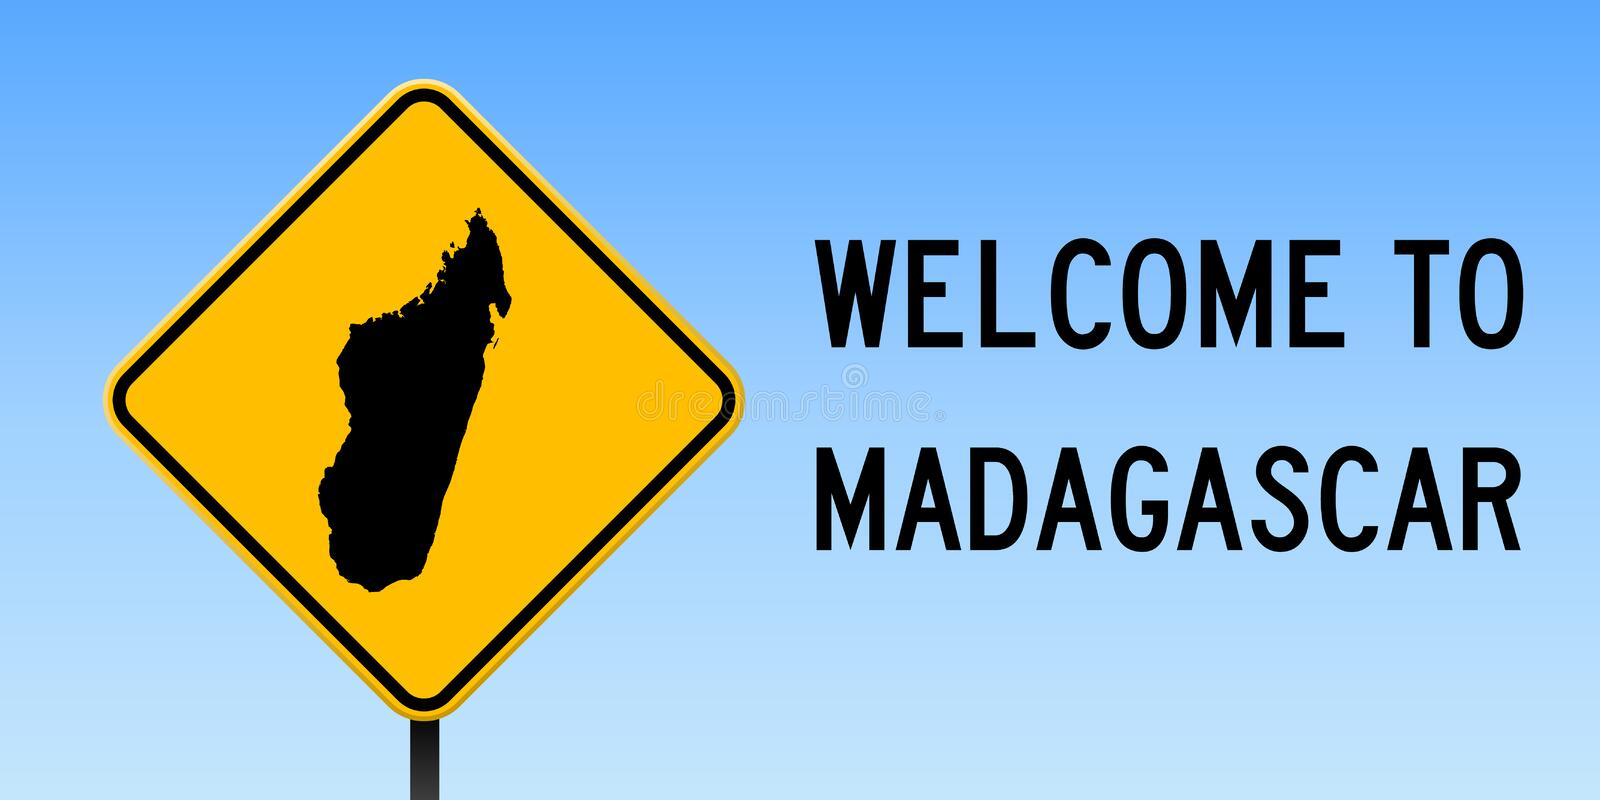 Madagascar map on road sign stock vector illustration of notice download madagascar map on road sign stock vector illustration of notice border publicscrutiny Choice Image